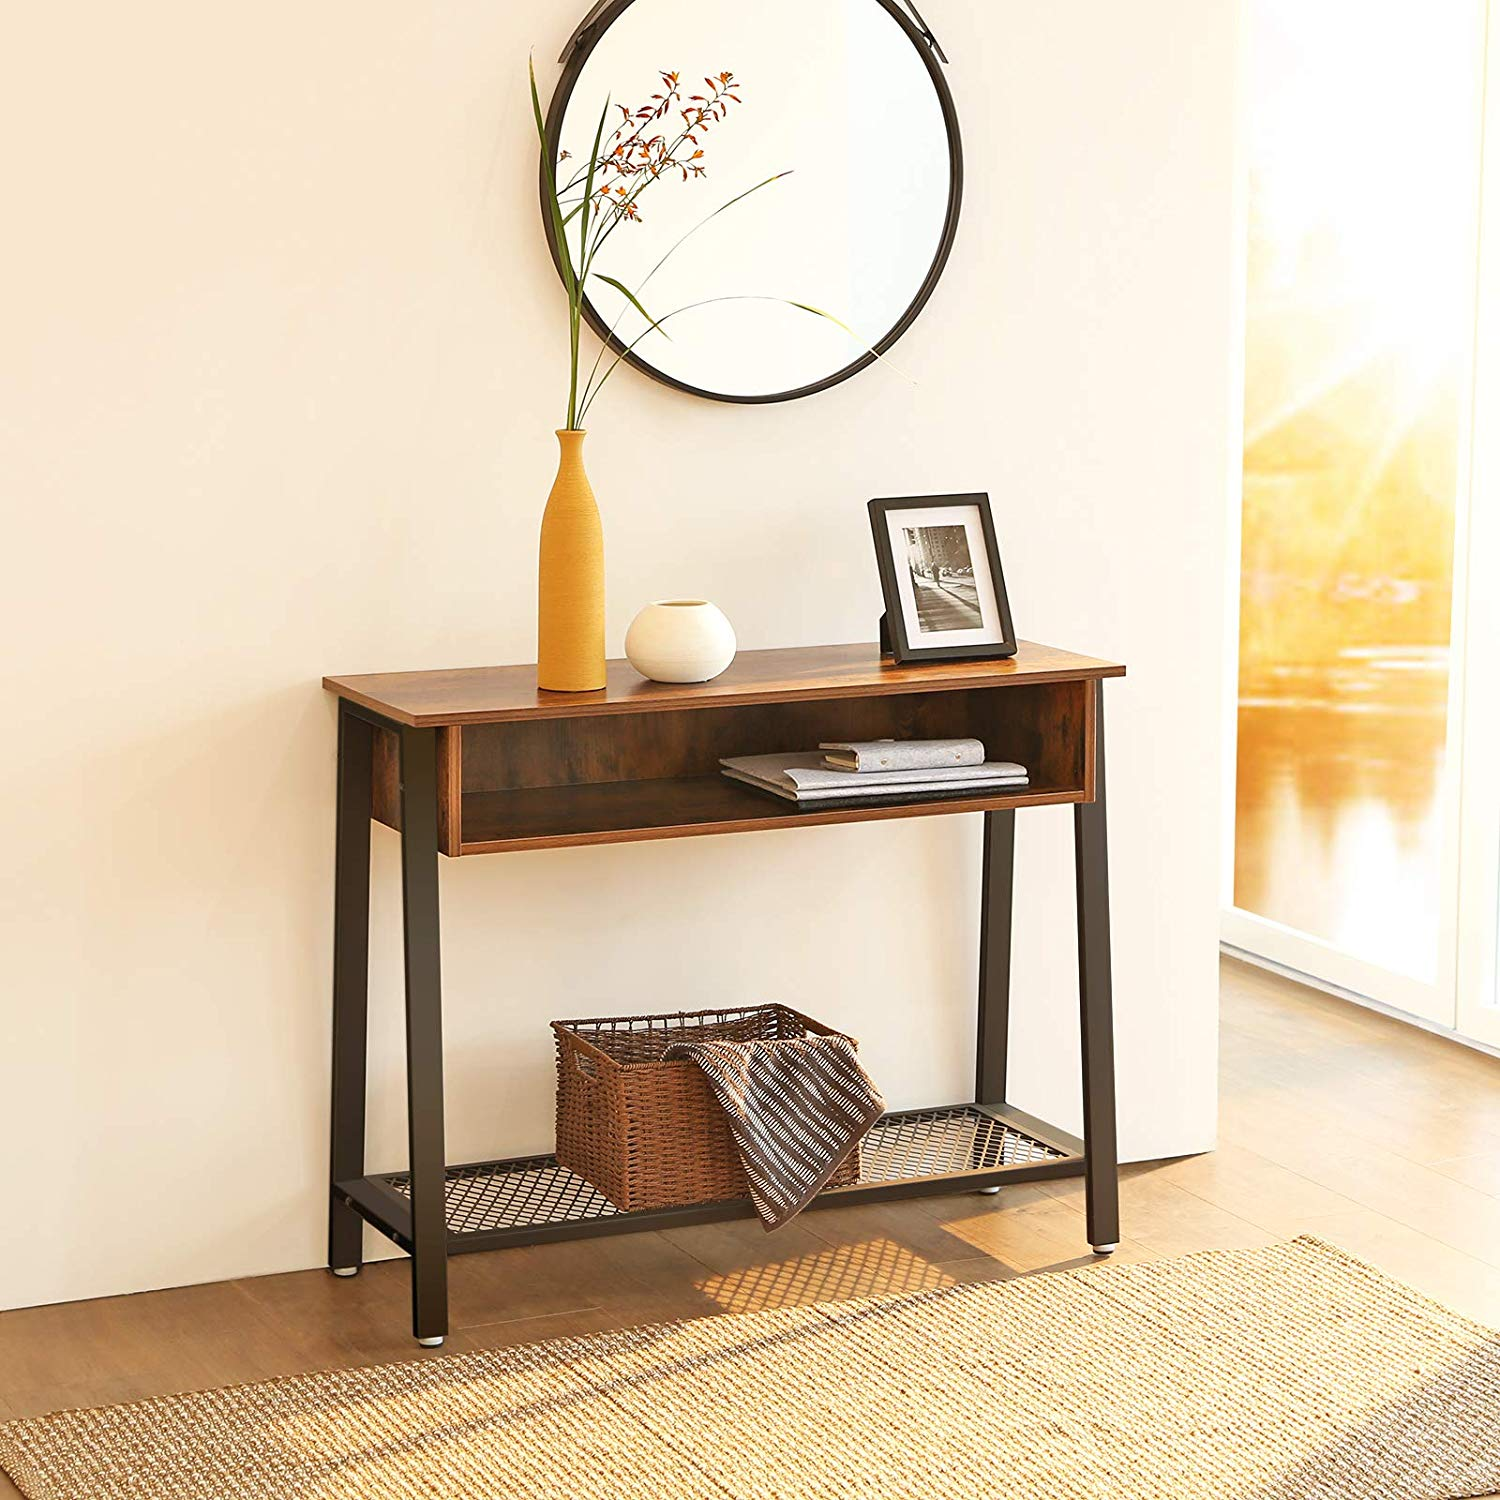 Shop hawkinswoodshop.com for solid wood & metal modern, traditional, contemporary, industrial, custom, rustic, and farmhouse furniture including our Industrial Vintage Sofa Console Table.  Enjoy free nationwide shipping, help with the fight against hunger in the US, and support a family owned and operated business that helps puts food on the table for folks in rural Northern California.